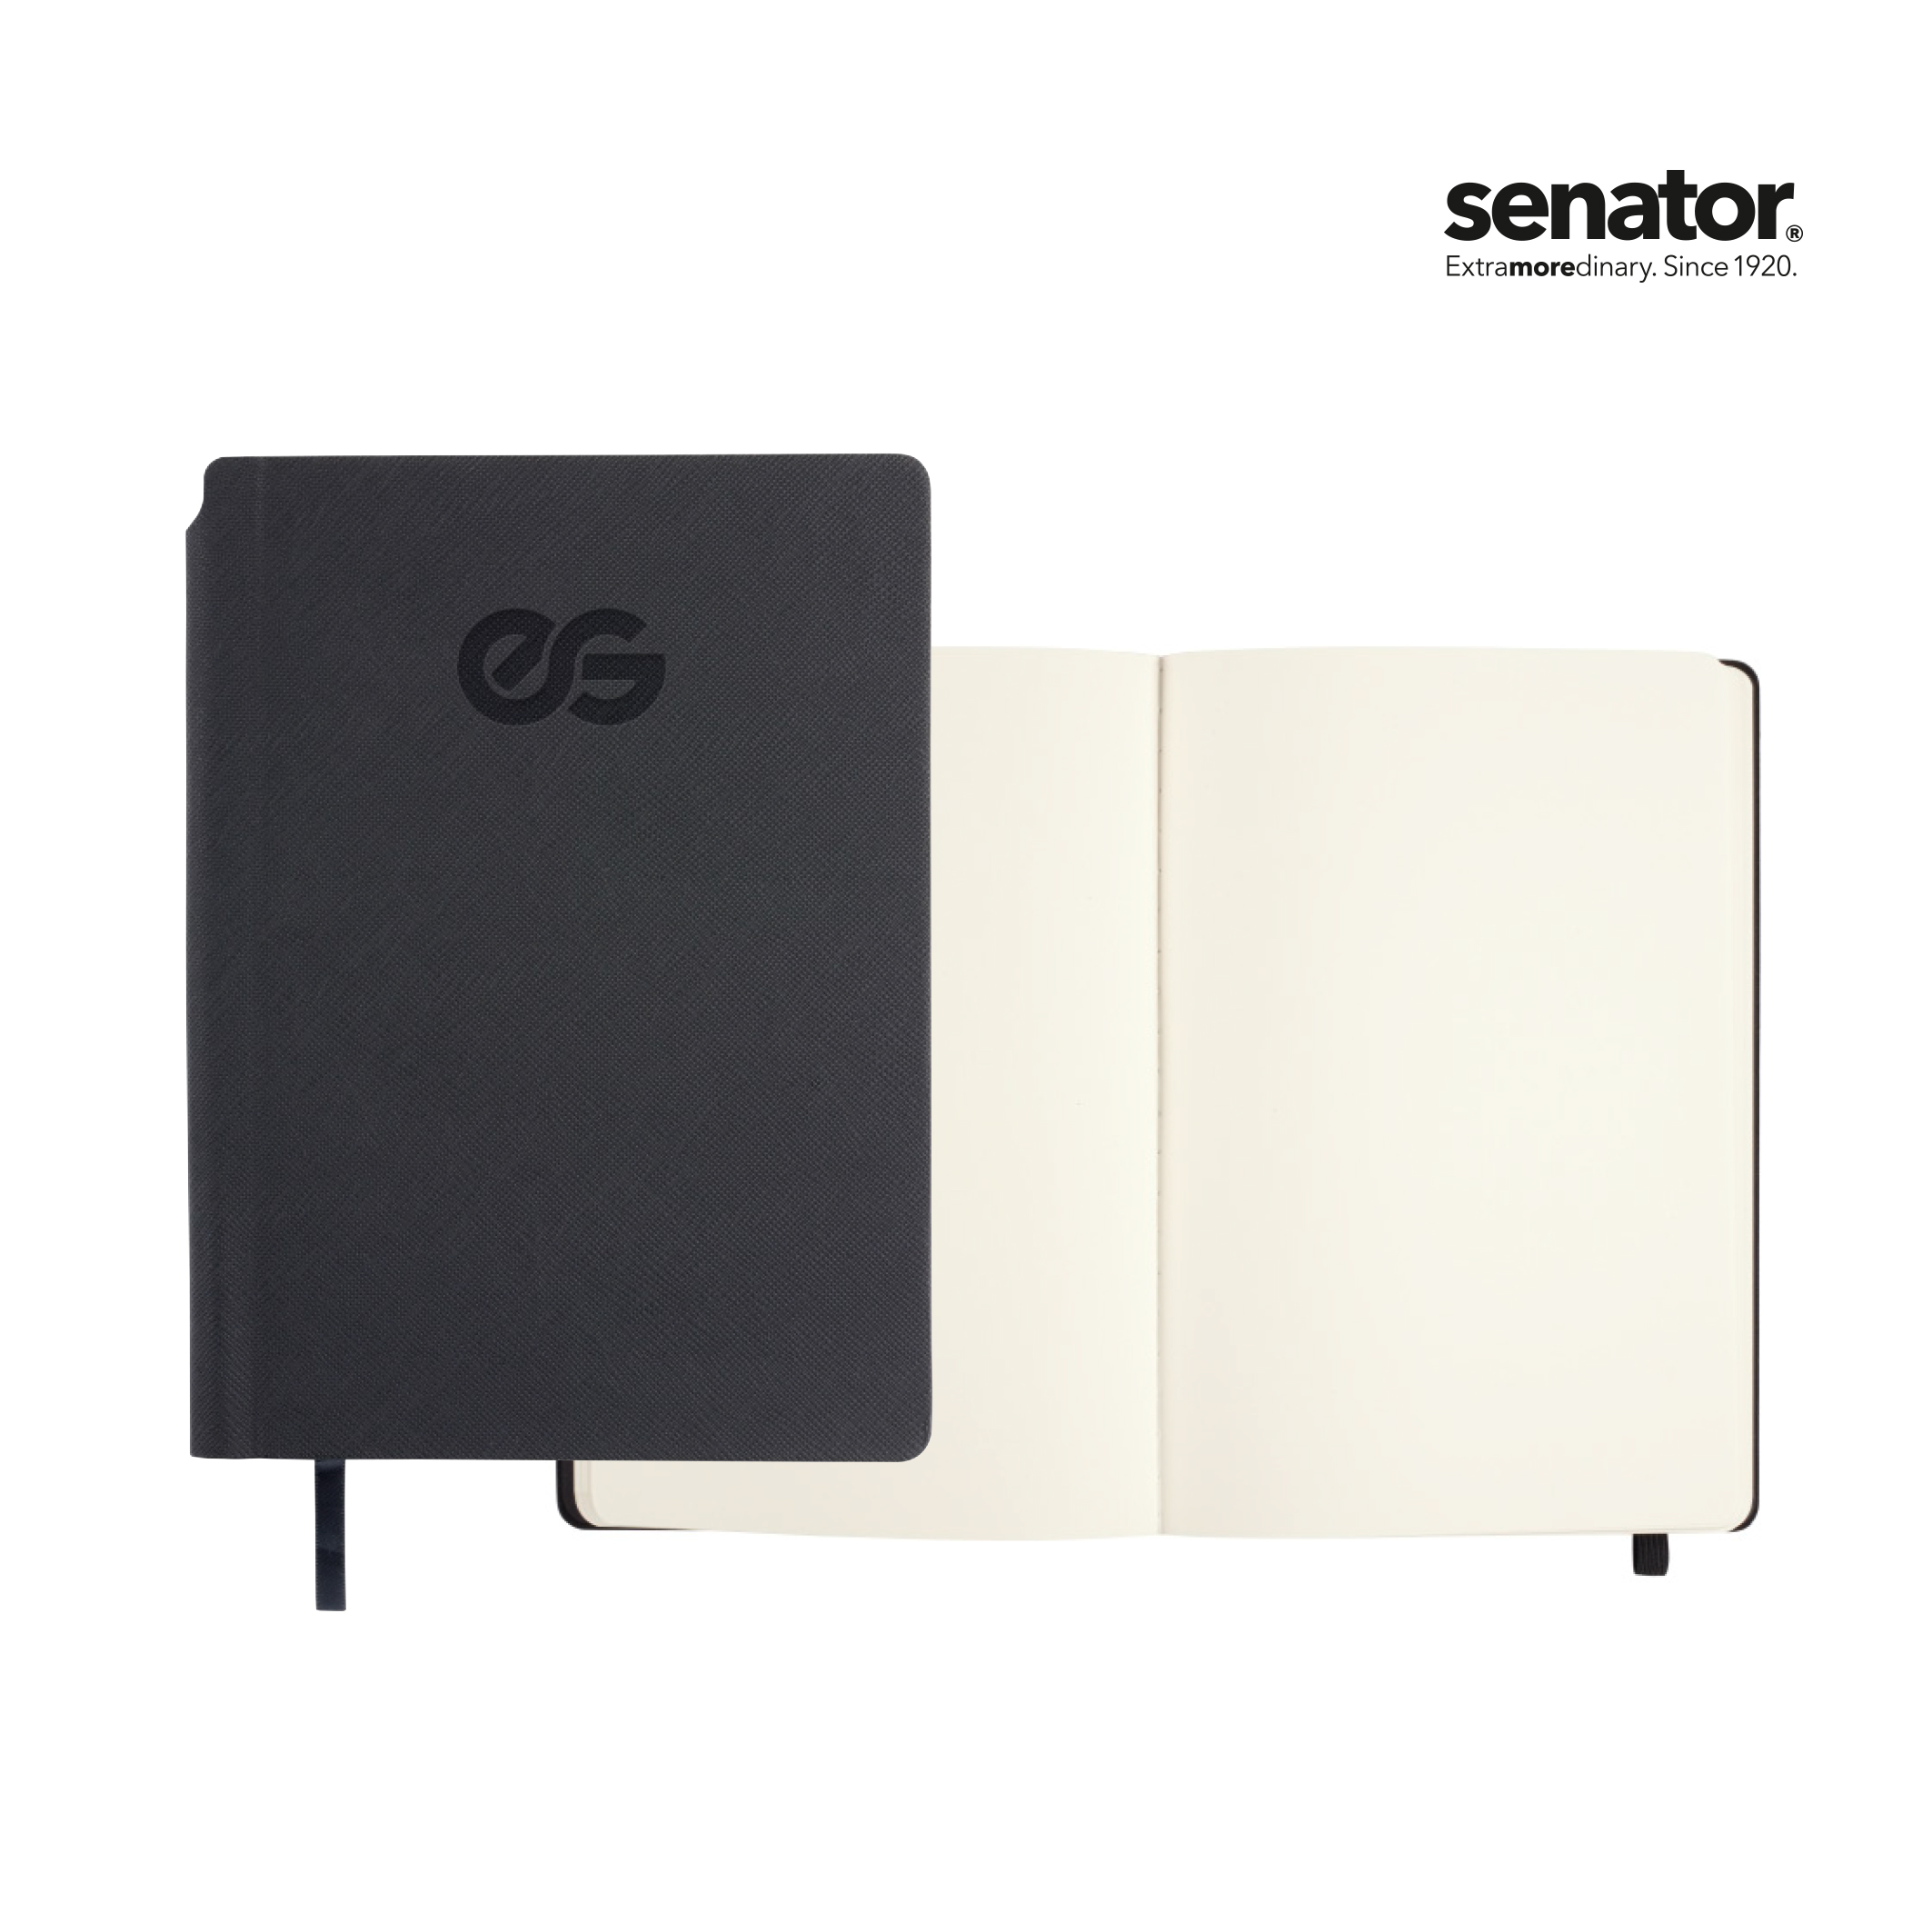 senator Notebook with structure